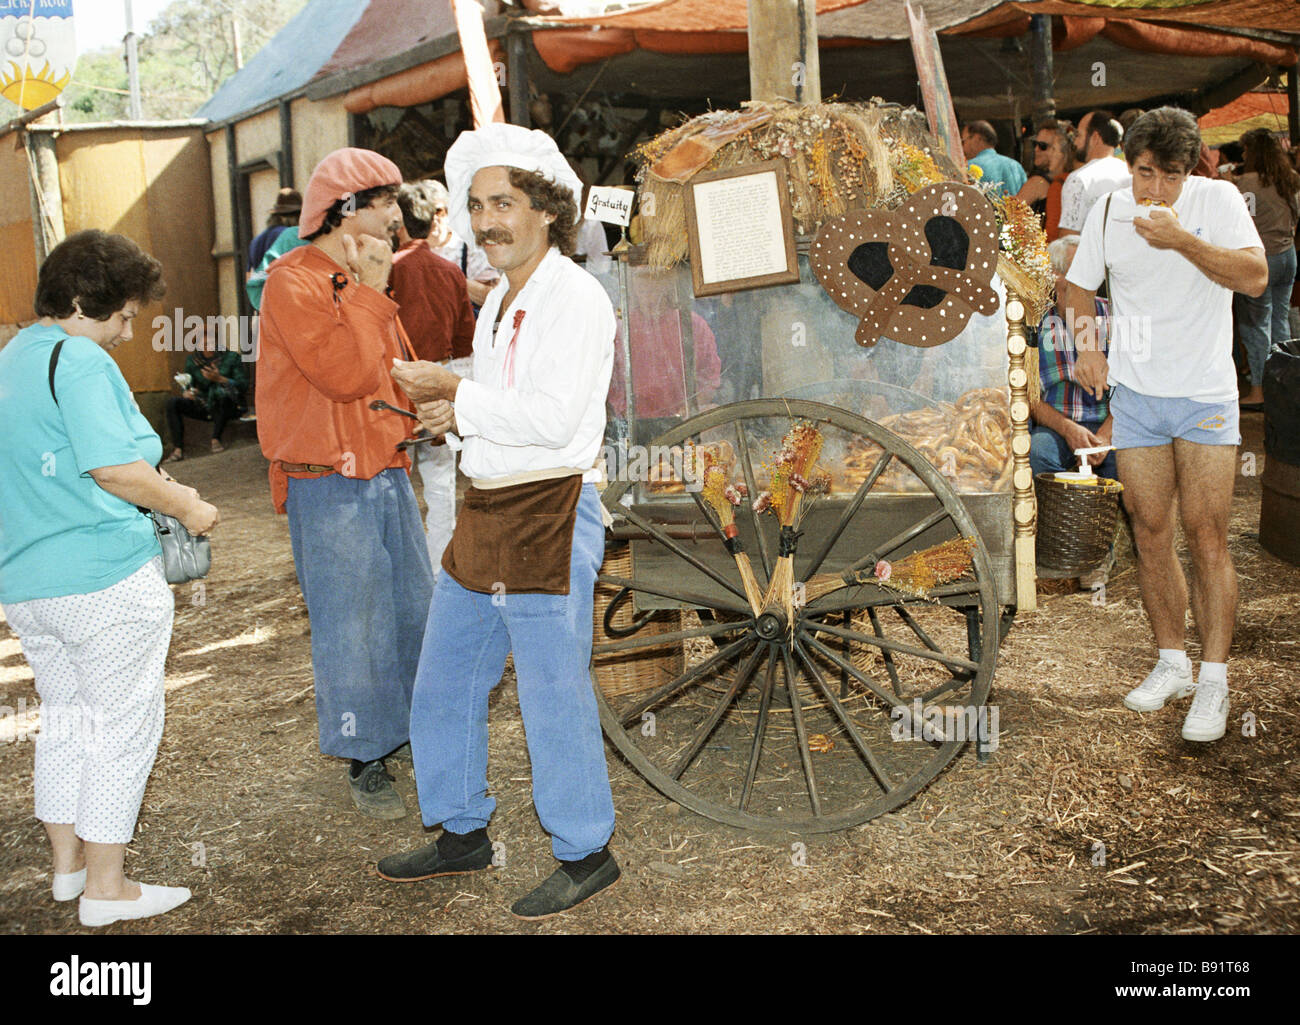 Sellers of hot boubliks at the Renaissance Pleasure Fair San Francisco - Stock Image